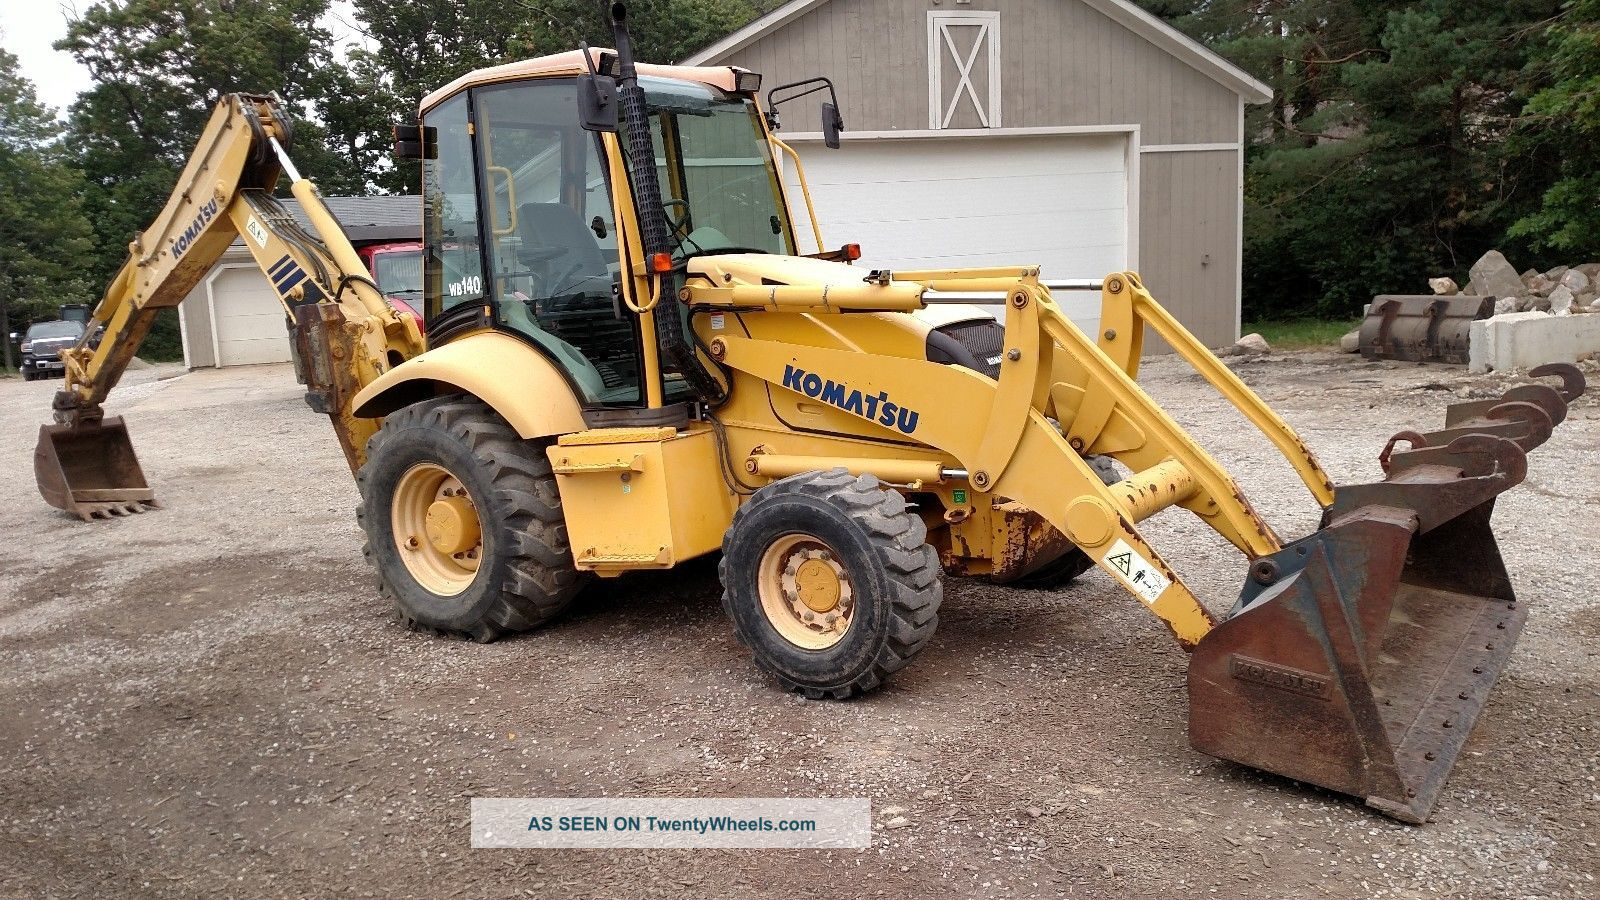 2004 Komatsu Wb140 Loader Backhoe 4x4 Extenda Hoe Enclosed Cab Backhoe Loaders photo